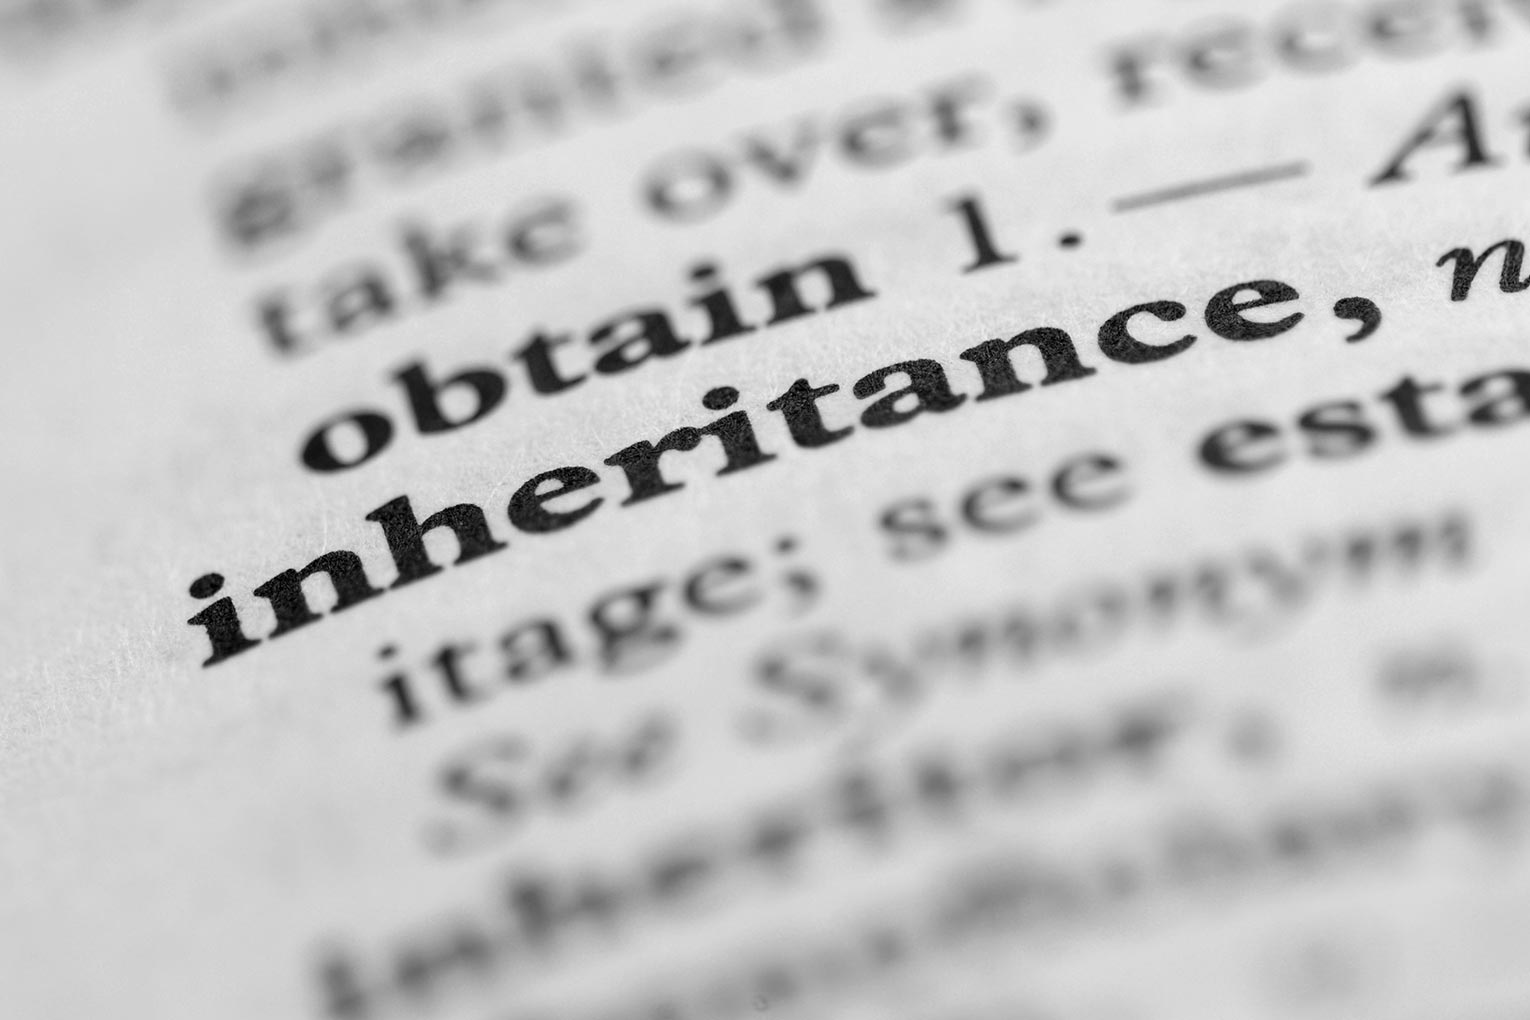 Brits' property inheritance plans revealed